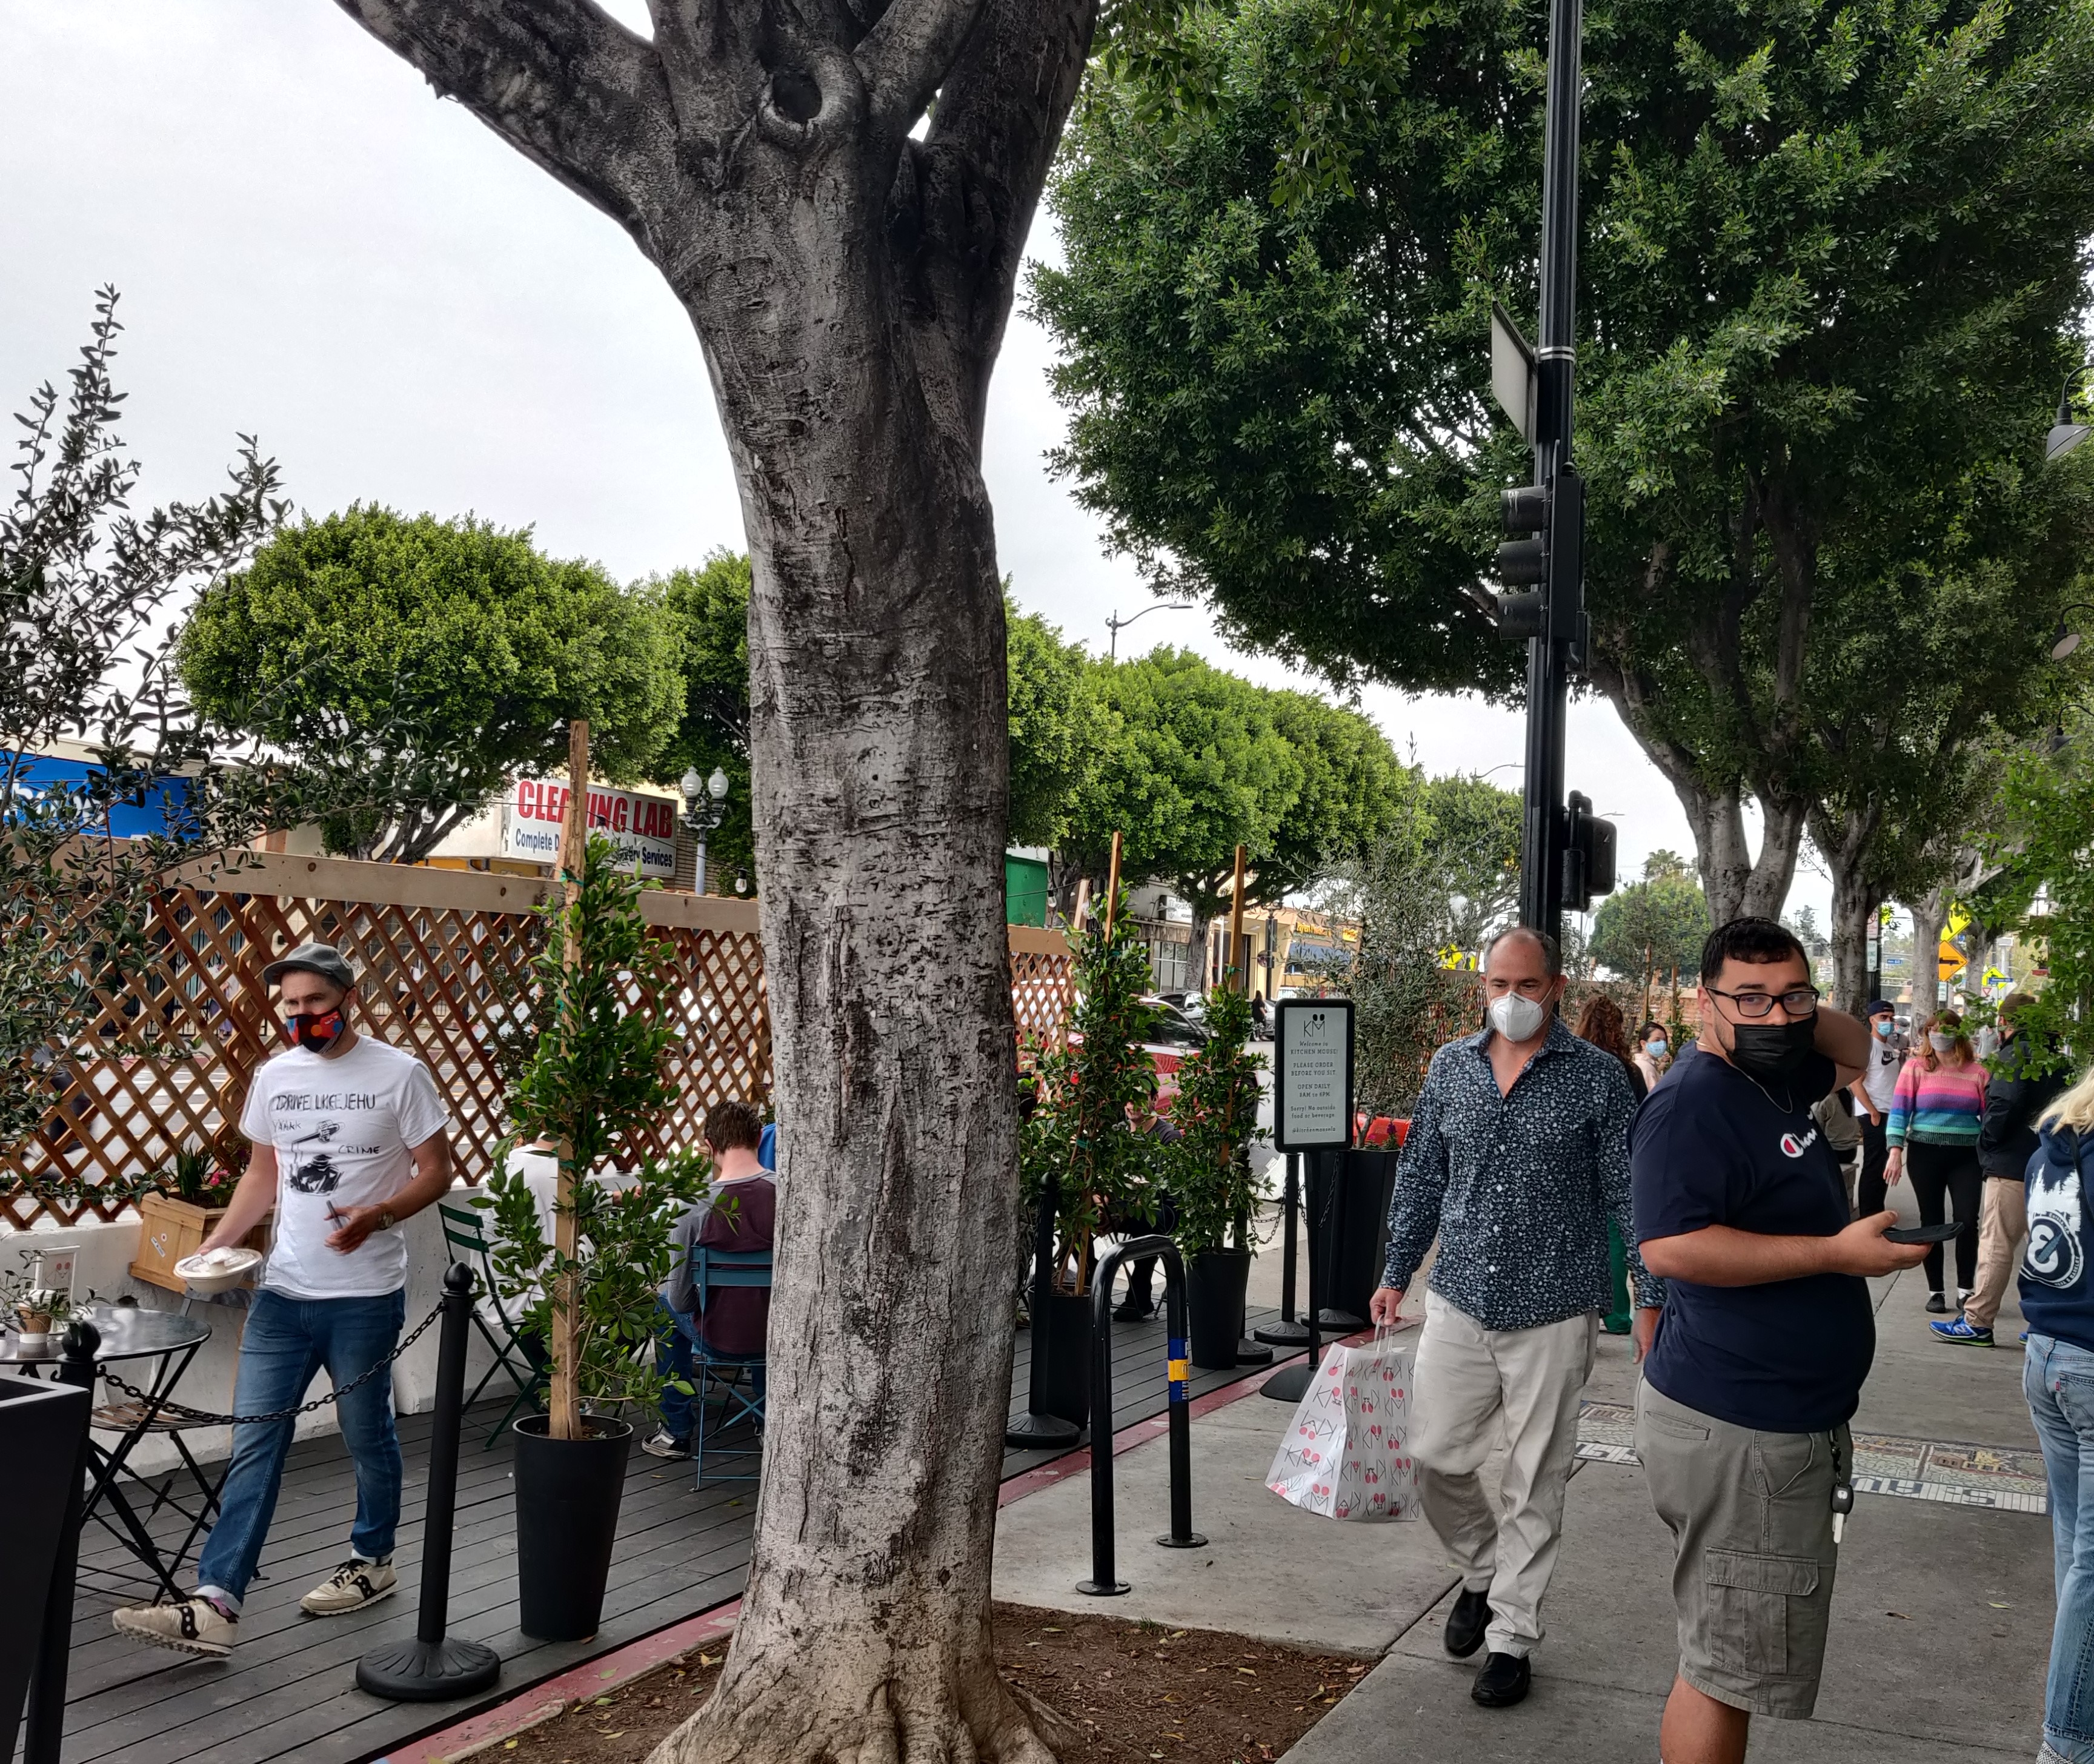 Councilmember Cedillo Installs Streetscapes & Outdoor Dining on N. Figueroa St. in Highland Park 4-14-2021 Photo 2